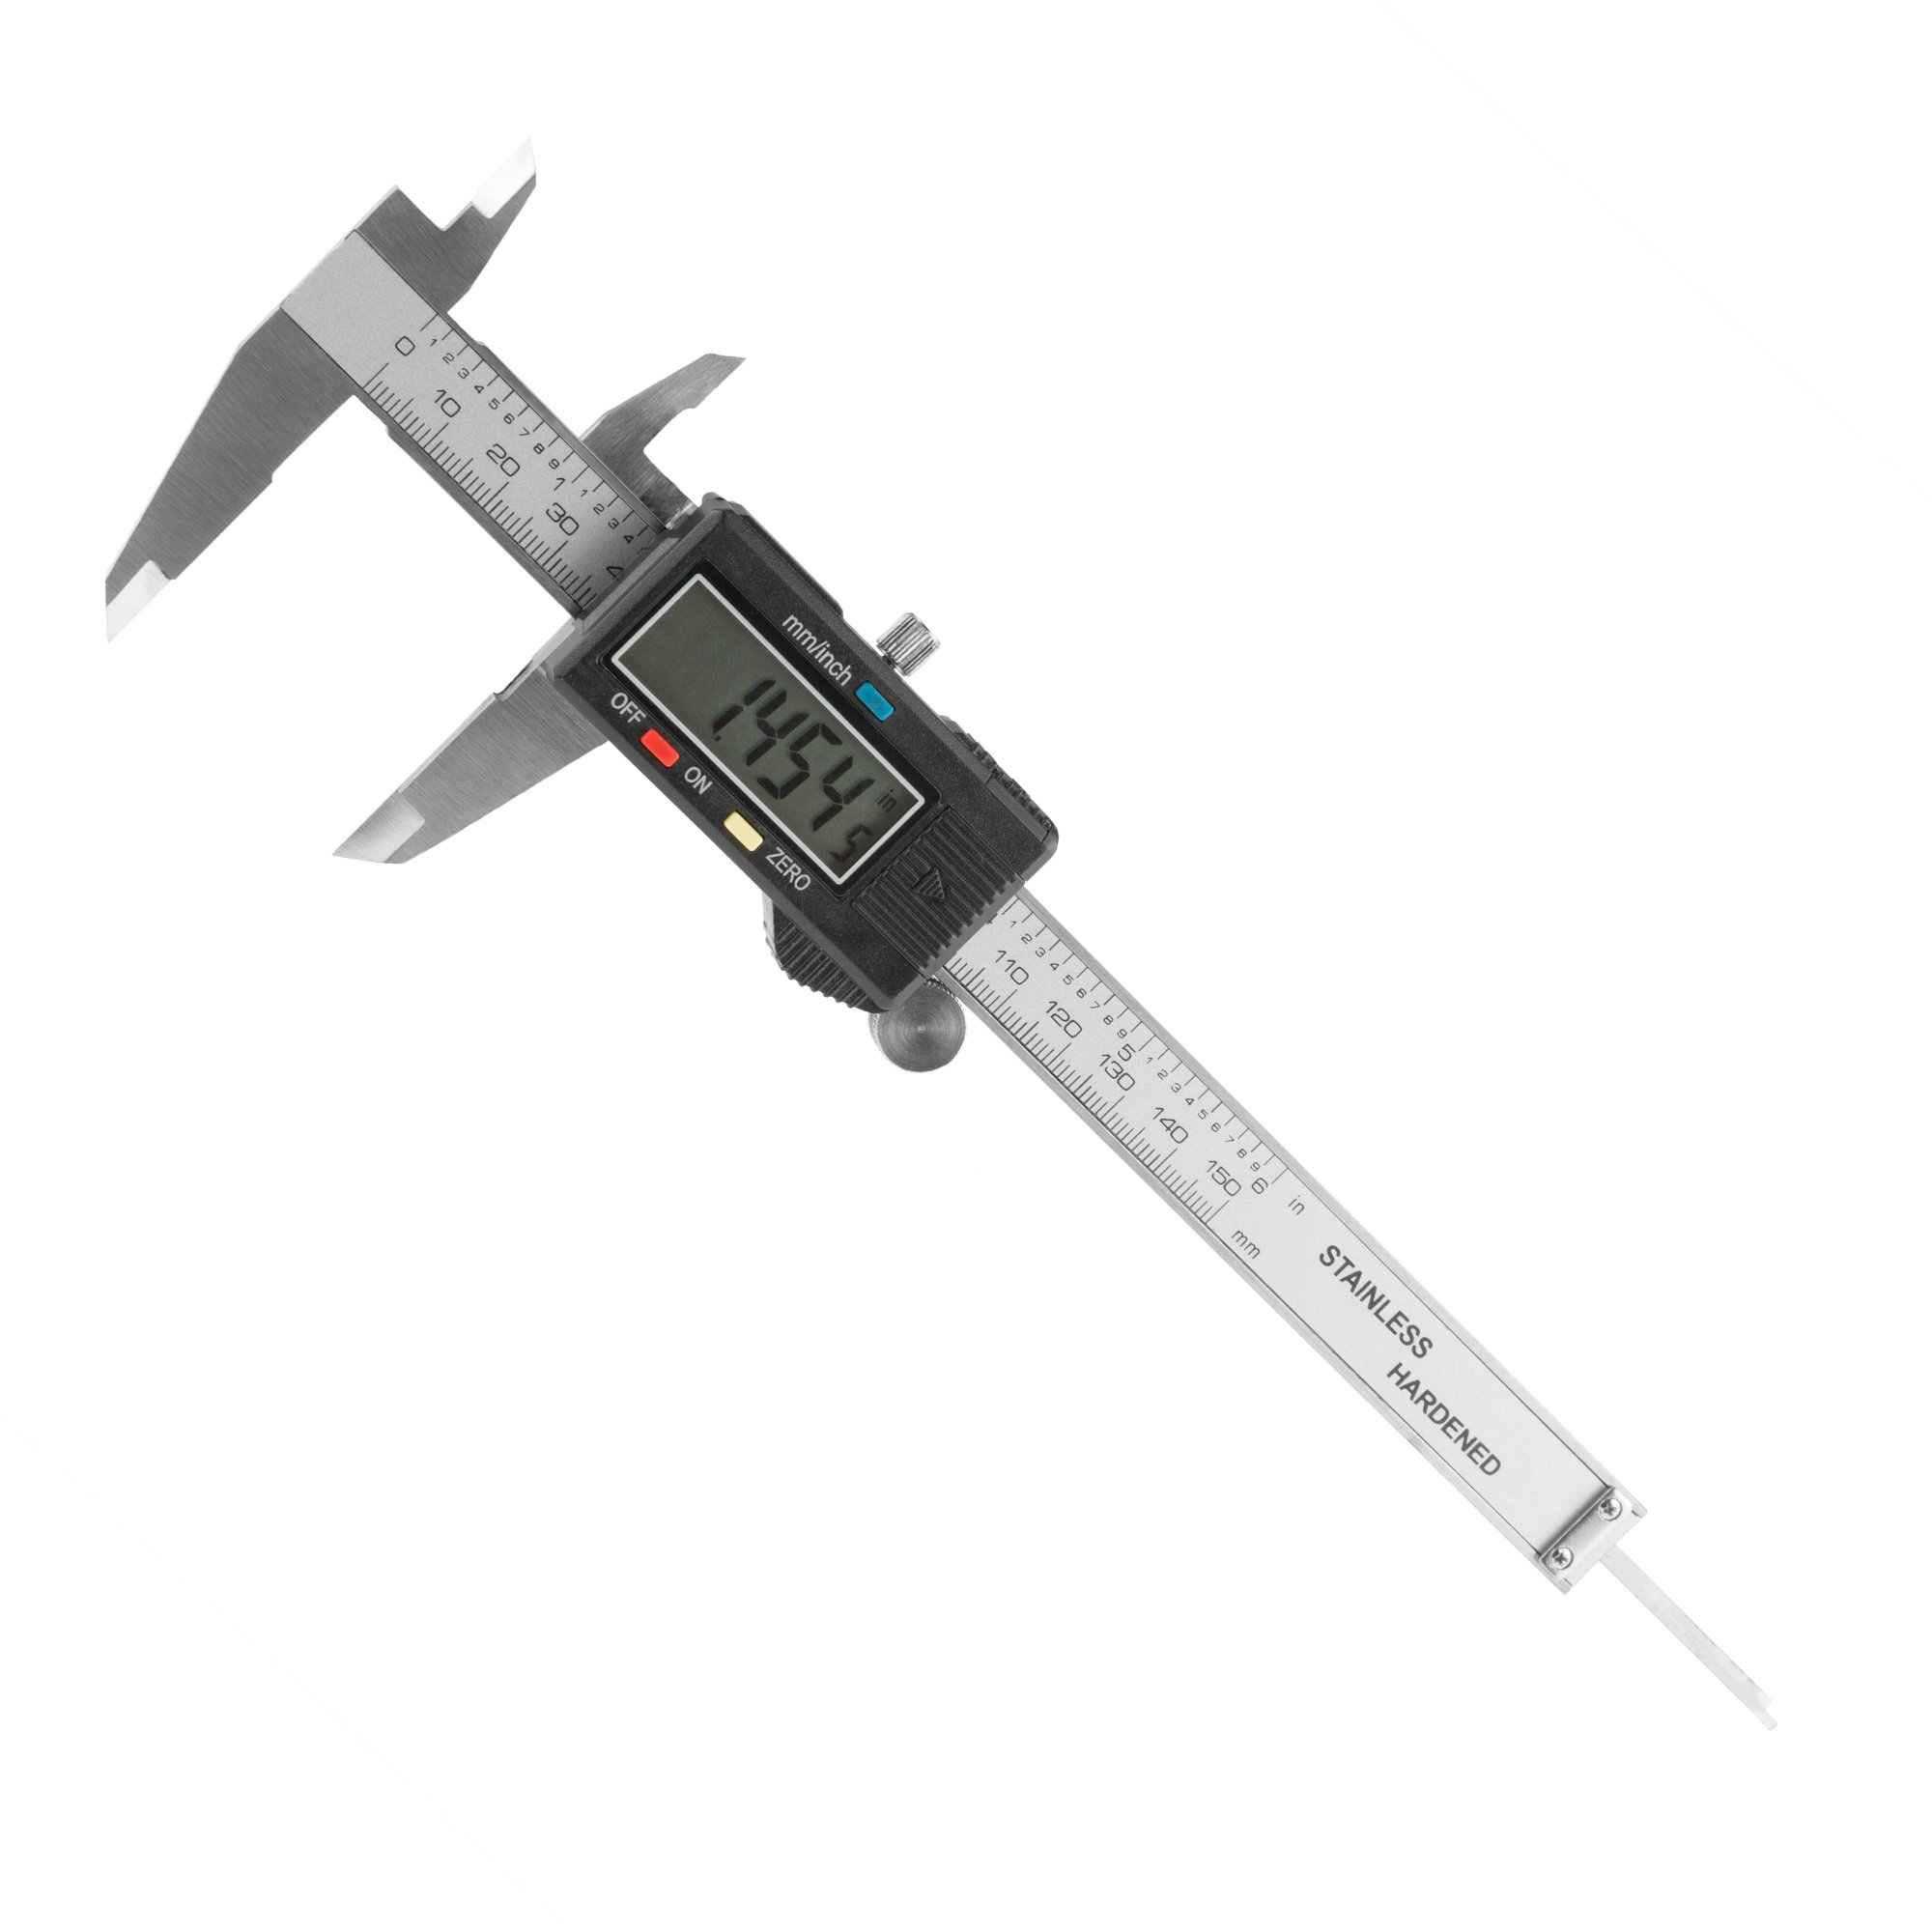 Electronic Digital Caliper, Stainless Steel with Extra Large LCD Screen and Inch/Metric Conversion- Measures Up to 6 Inch (0-150mm) by Stalwart